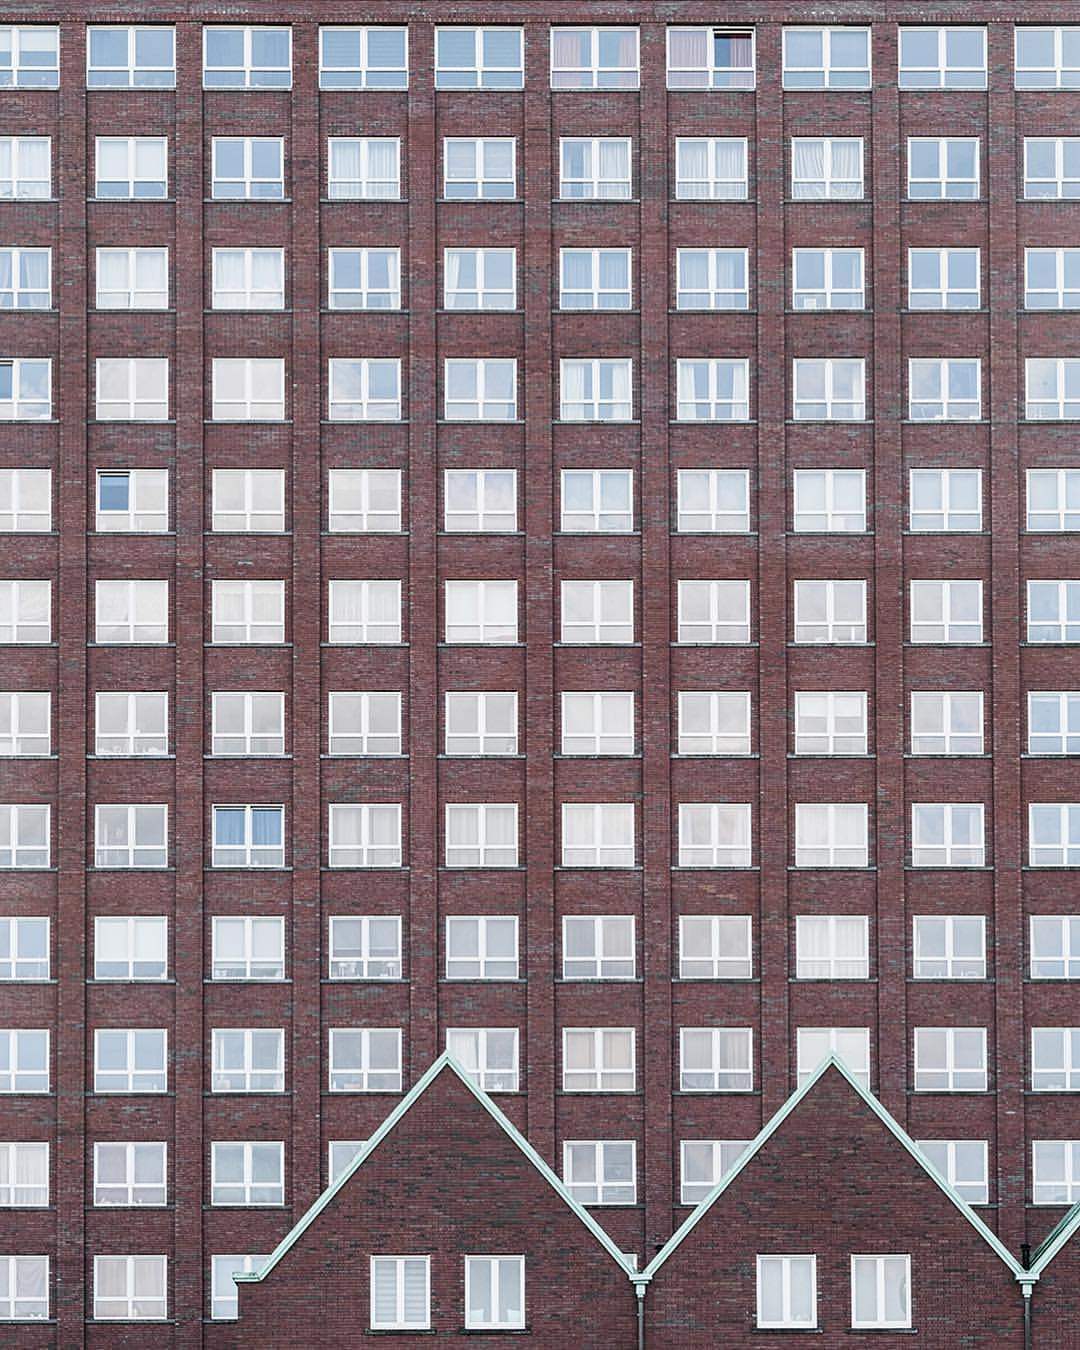 architecture_photography_19.jpg